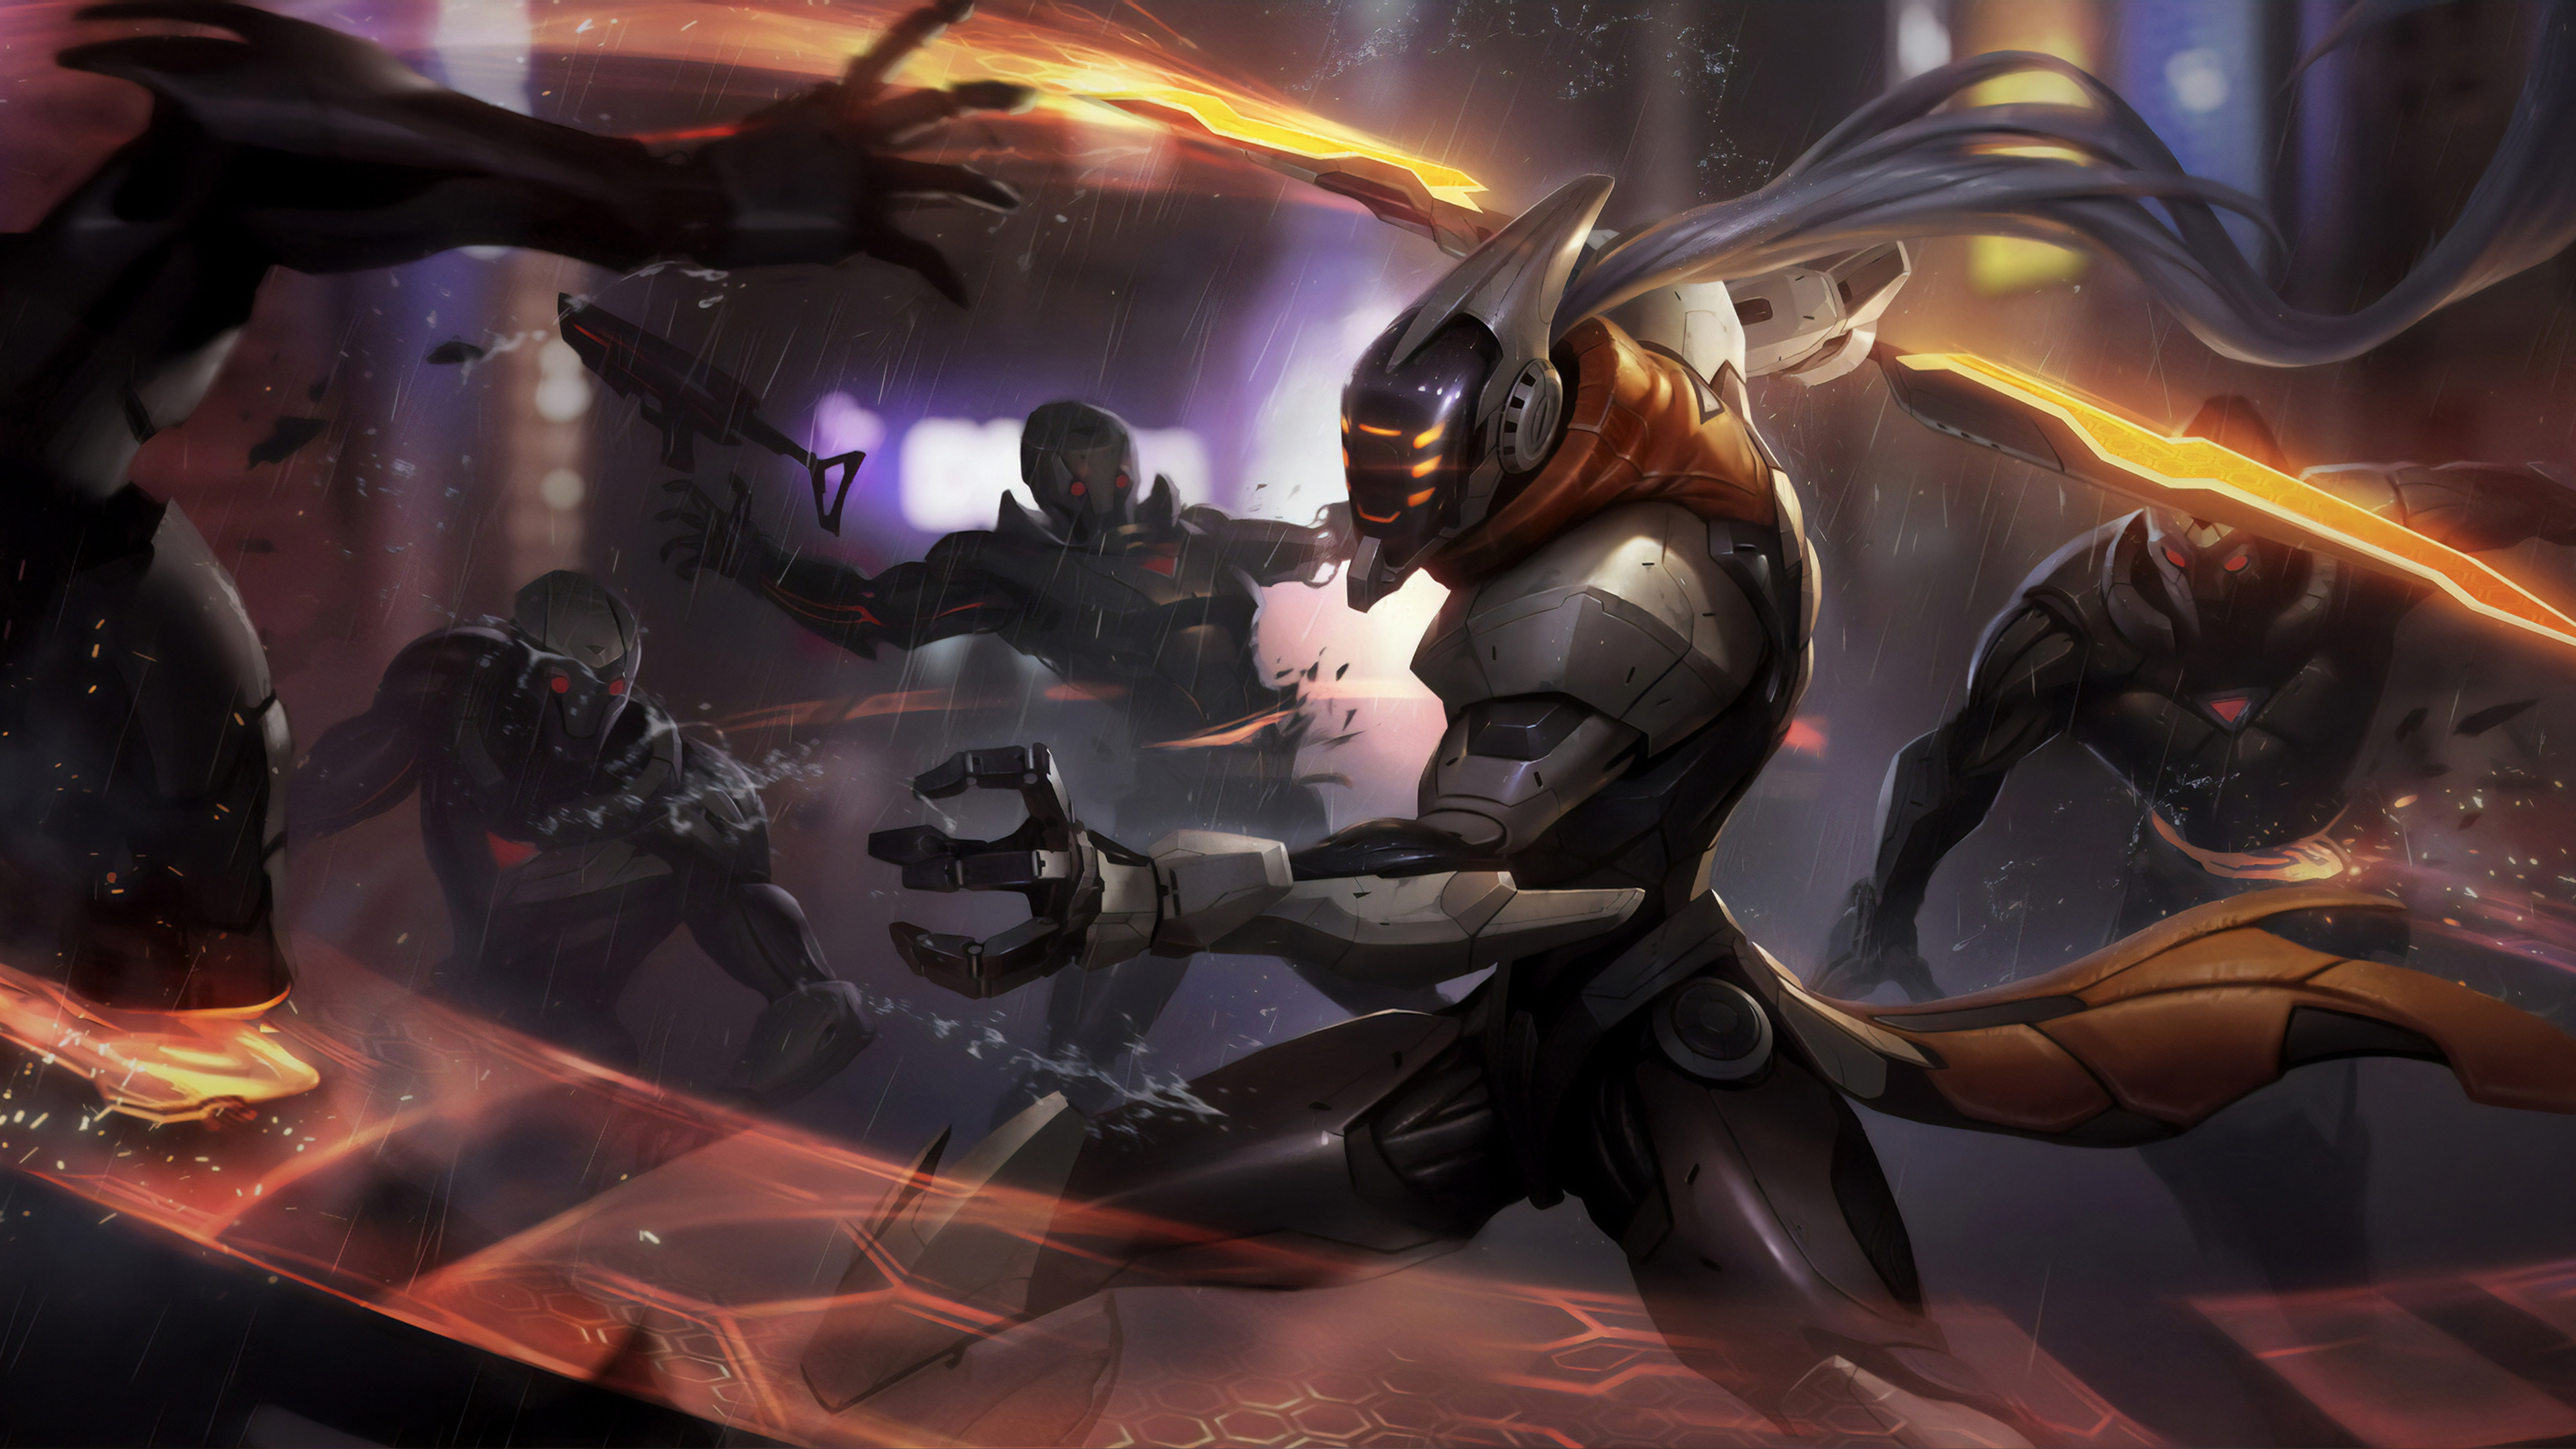 league of legends covered in enemies 1568056178 - League Of Legends Covered In Enemies - league of legends wallpapers, hd-wallpapers, games wallpapers, artstation wallpapers, 4k-wallpapers